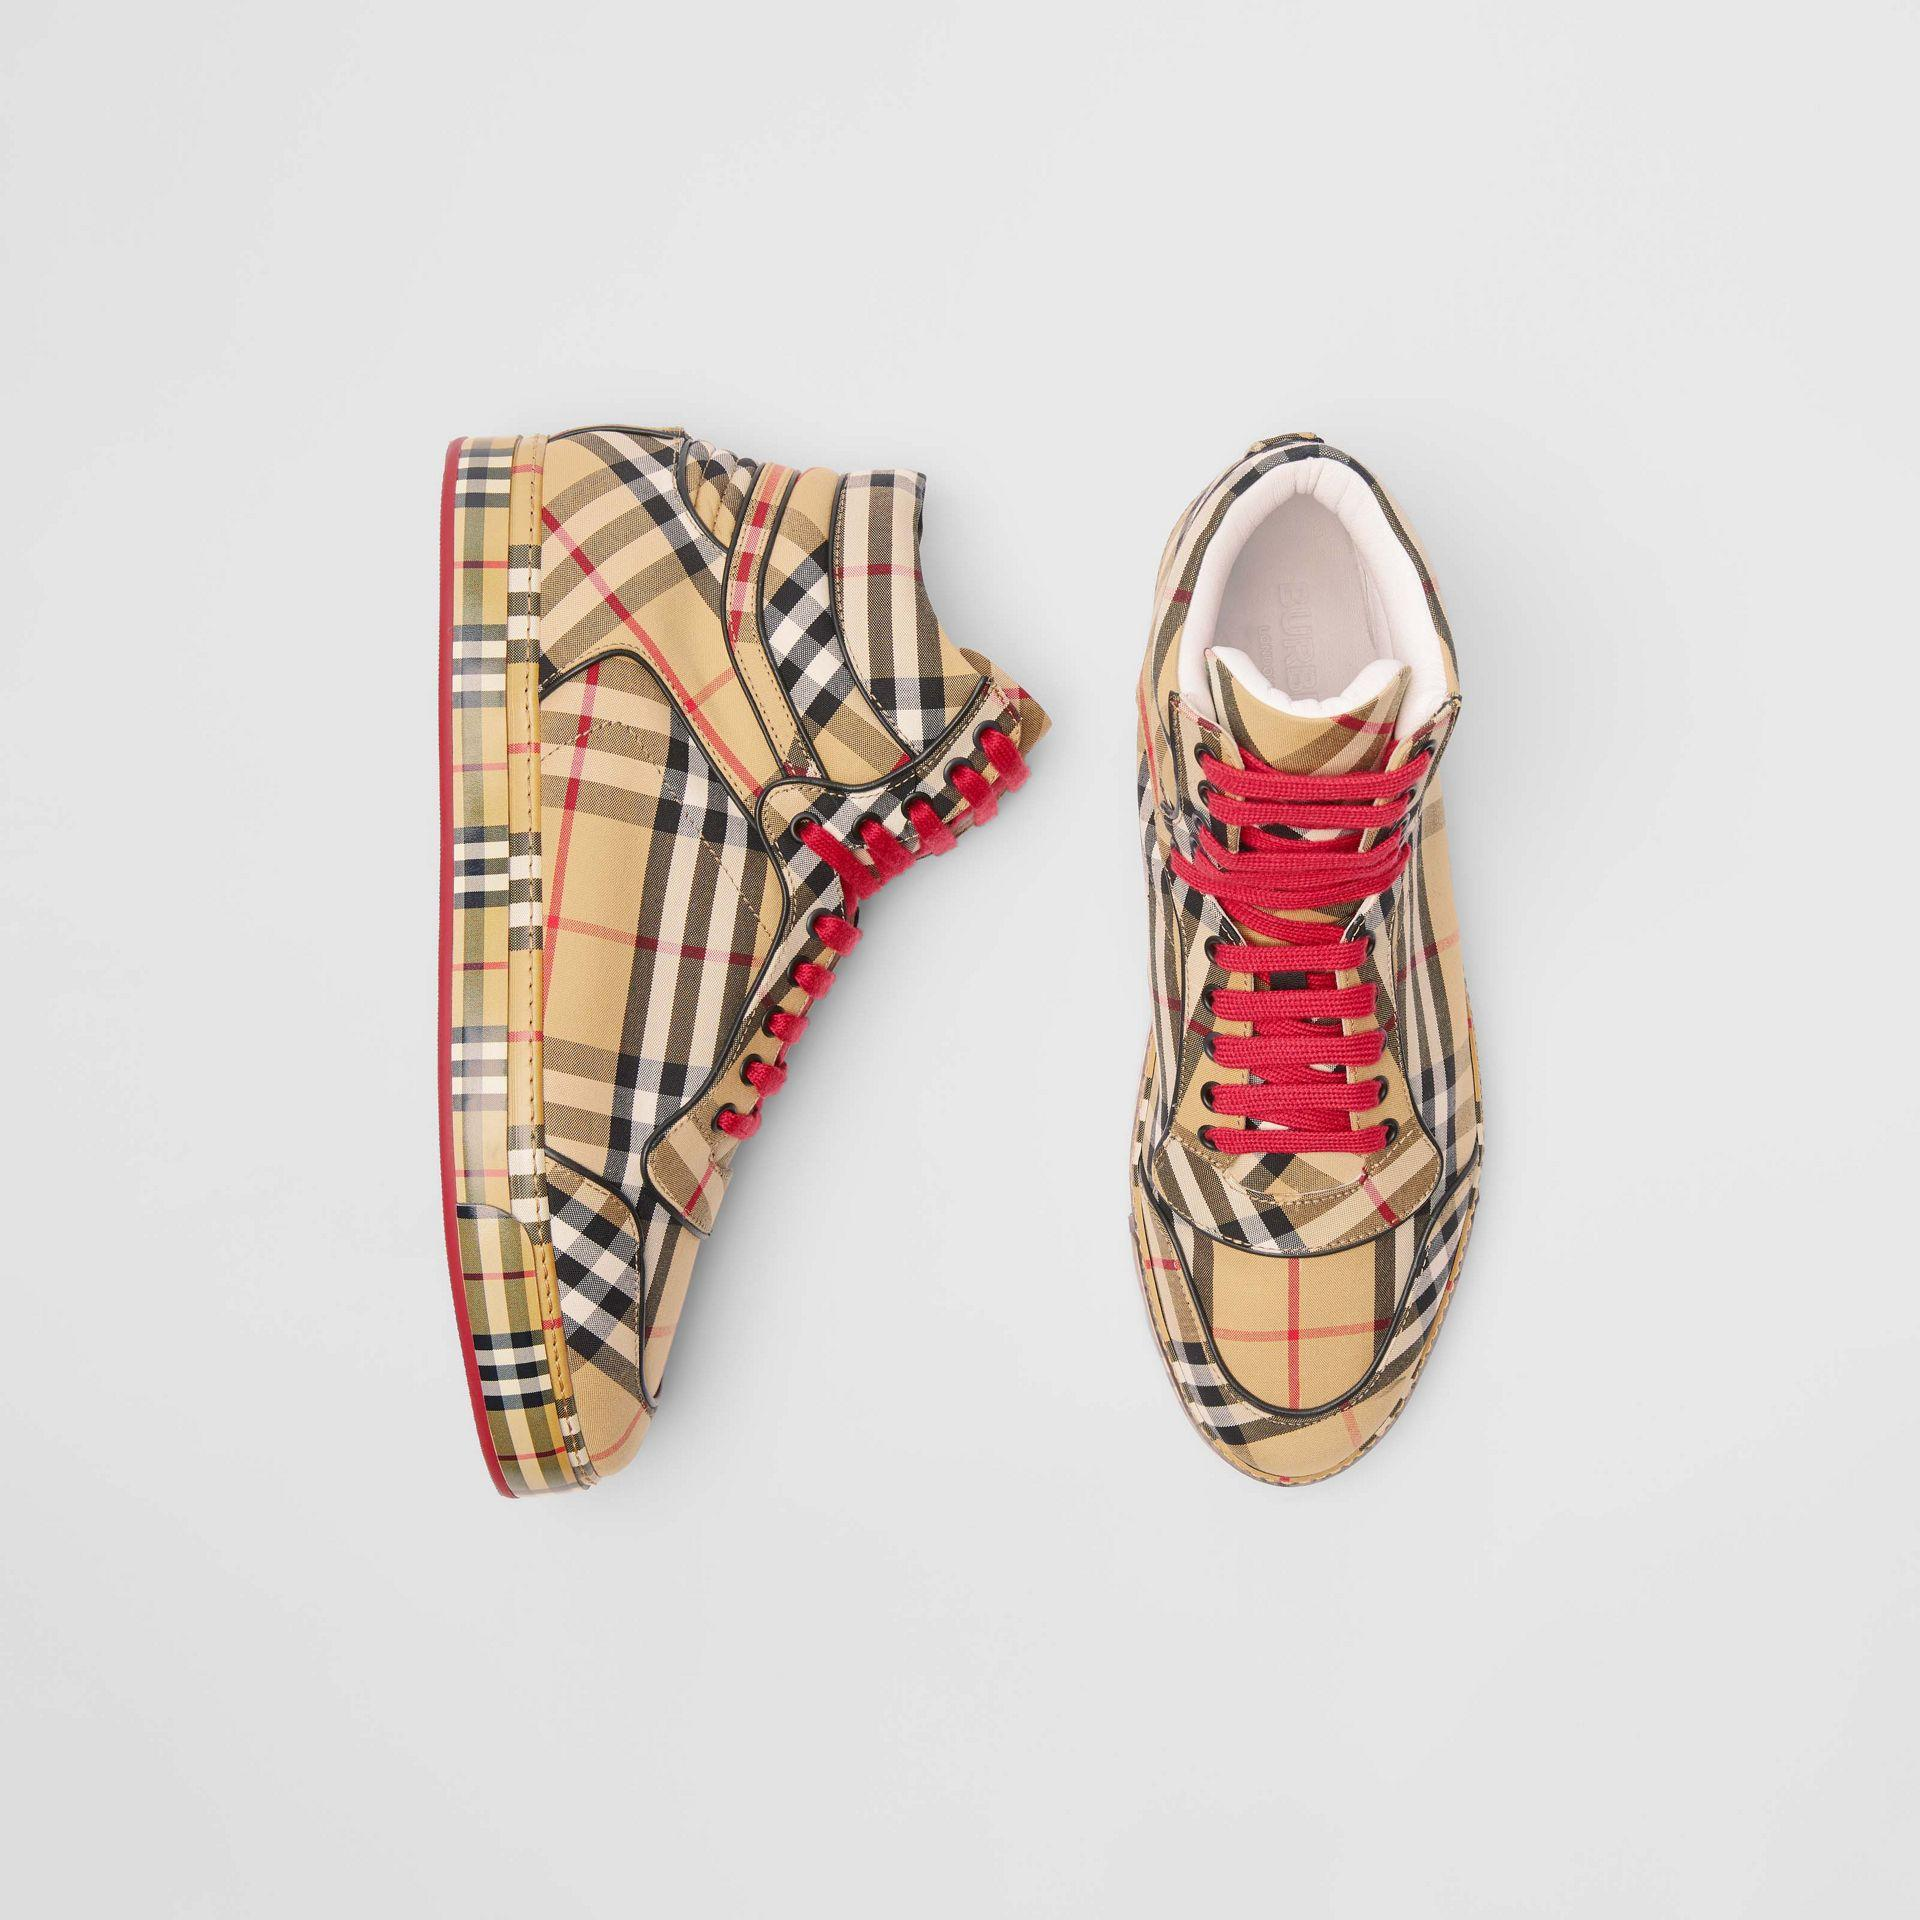 9985591afe18 Burberry Vintage Check Cotton High-top Sneakers for Men - Lyst